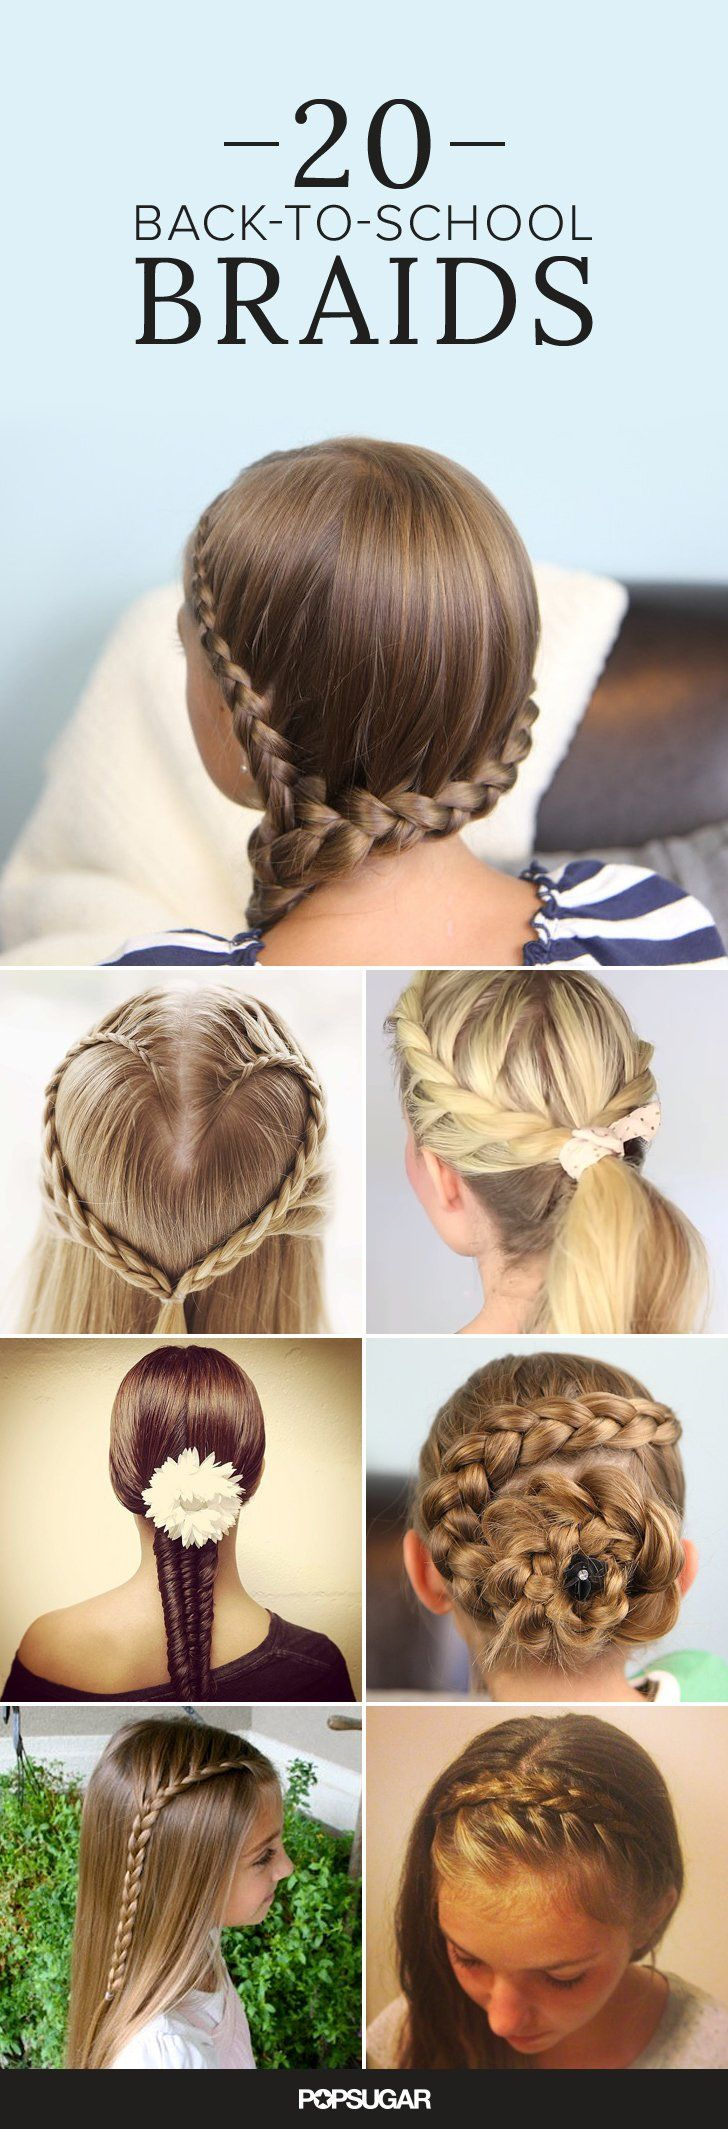 braids to inspire a school morning udo hair style girl